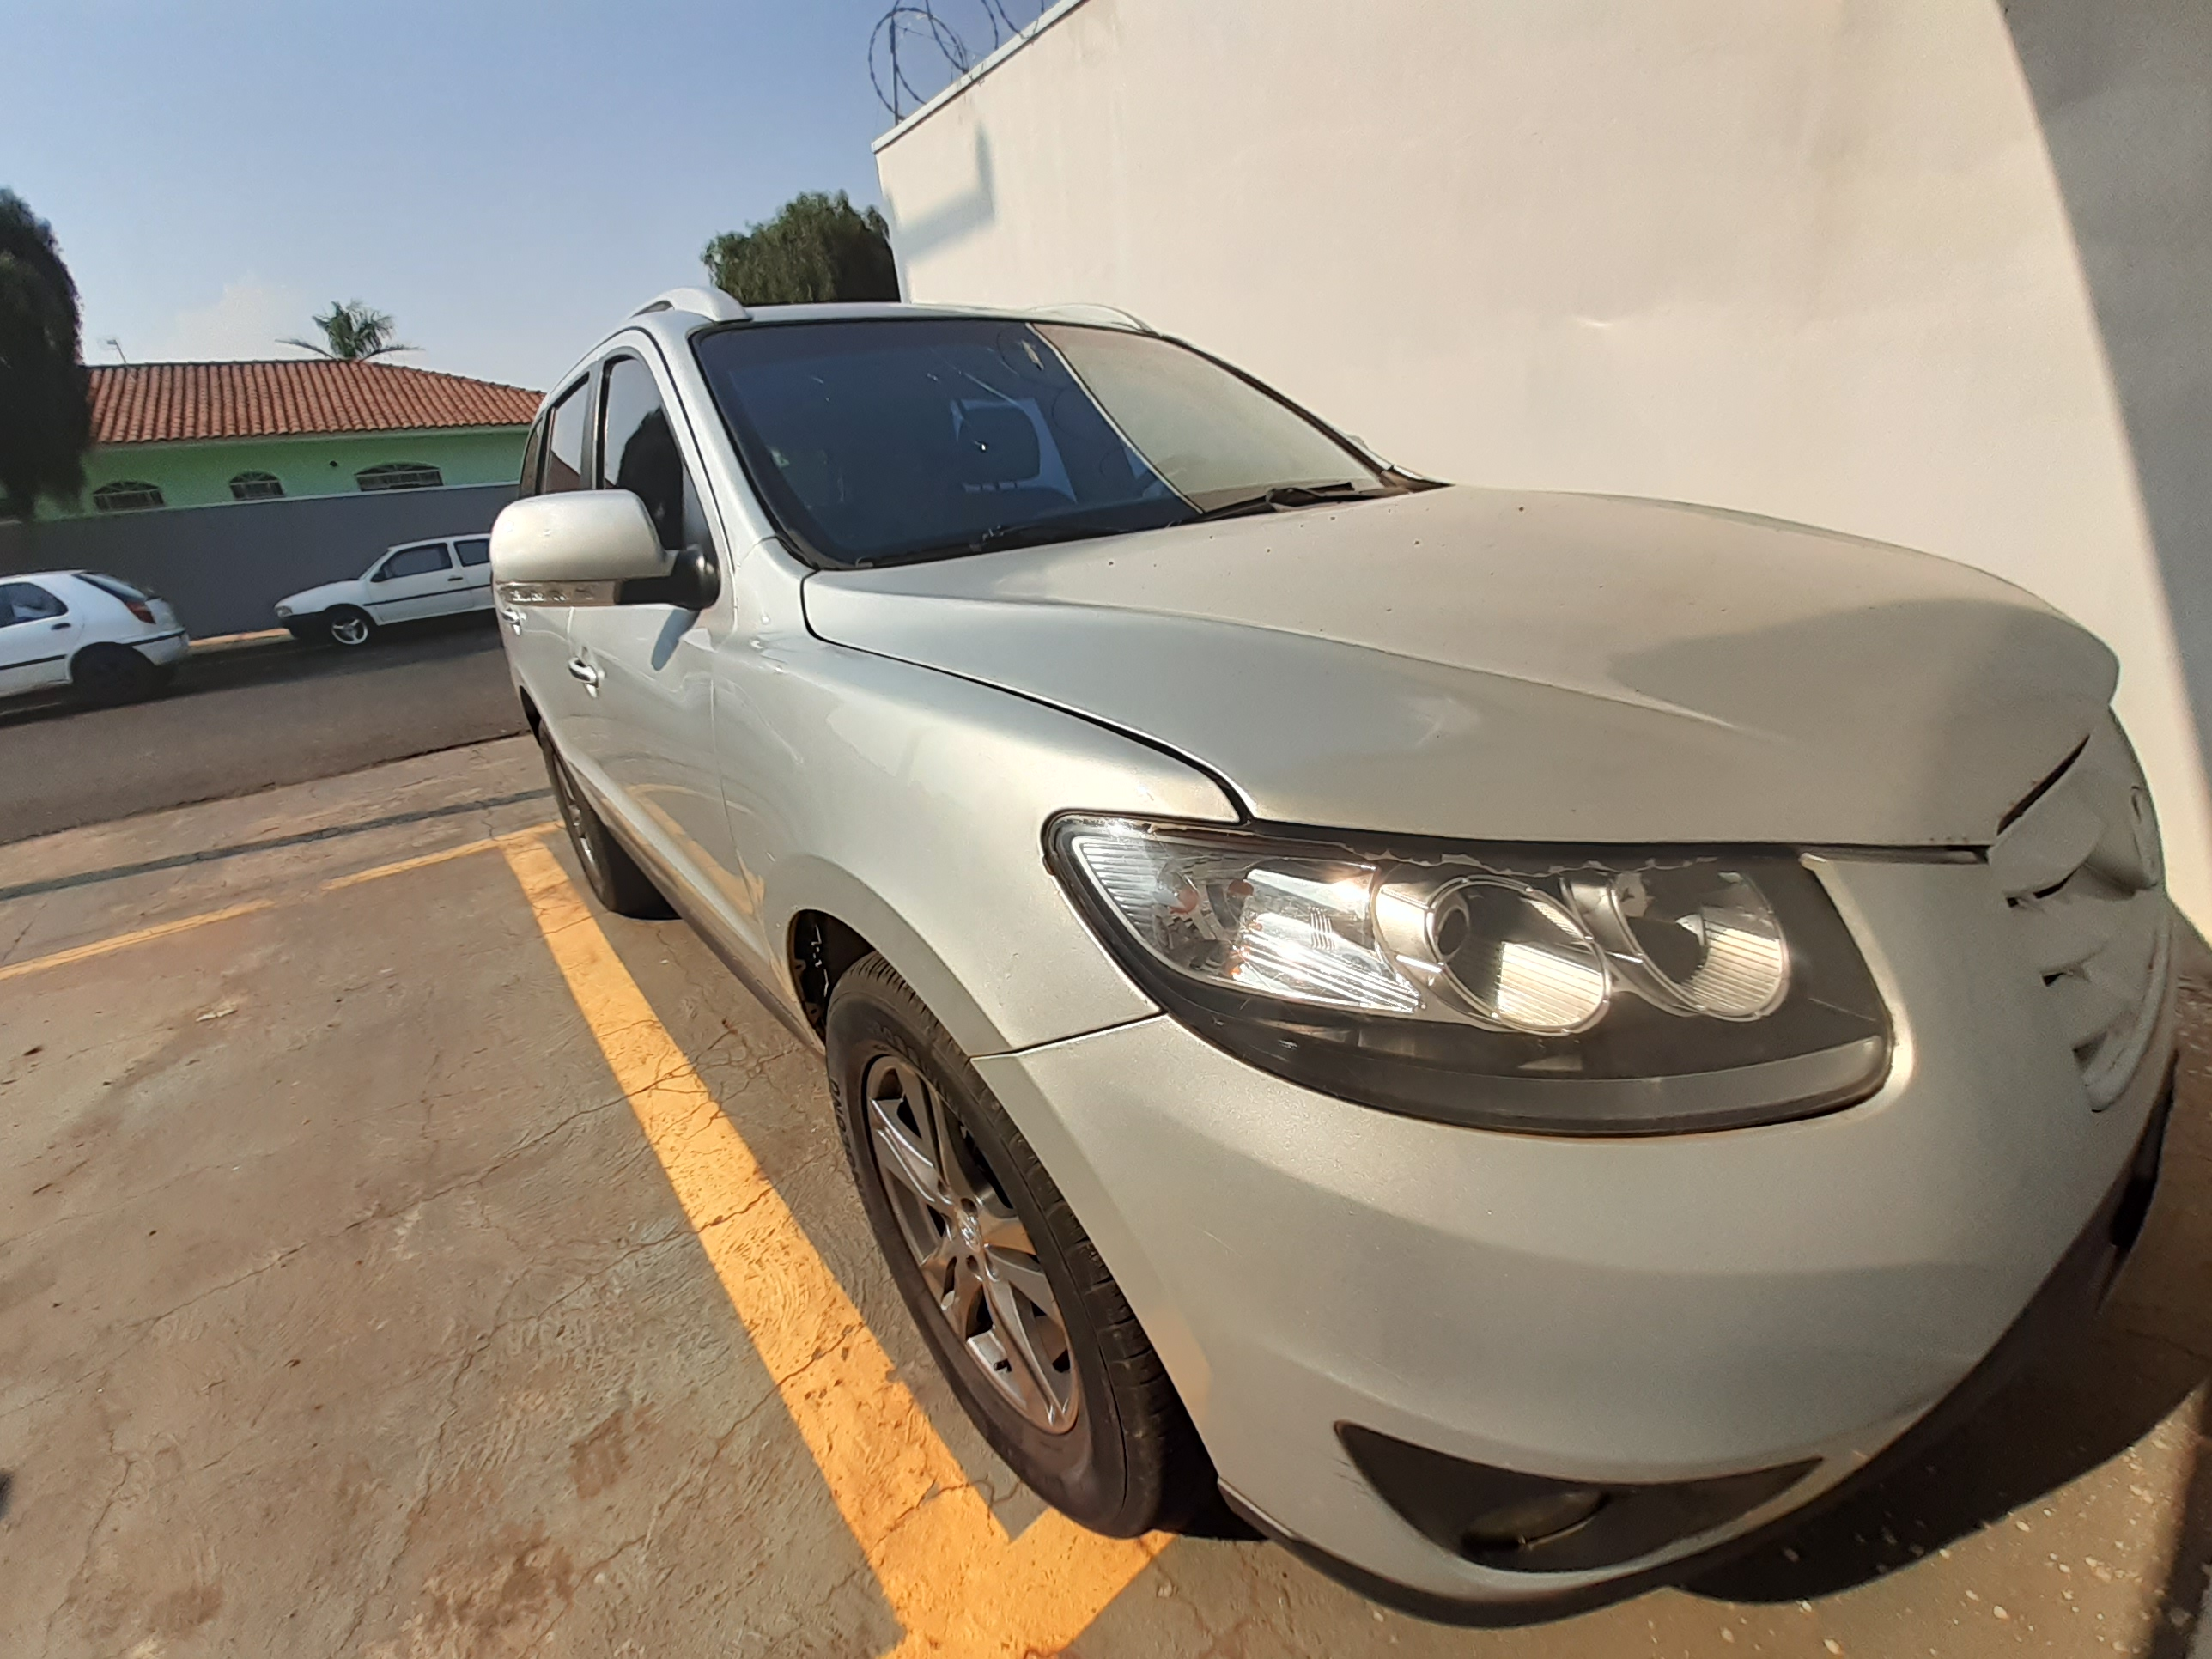 LOTE 48244